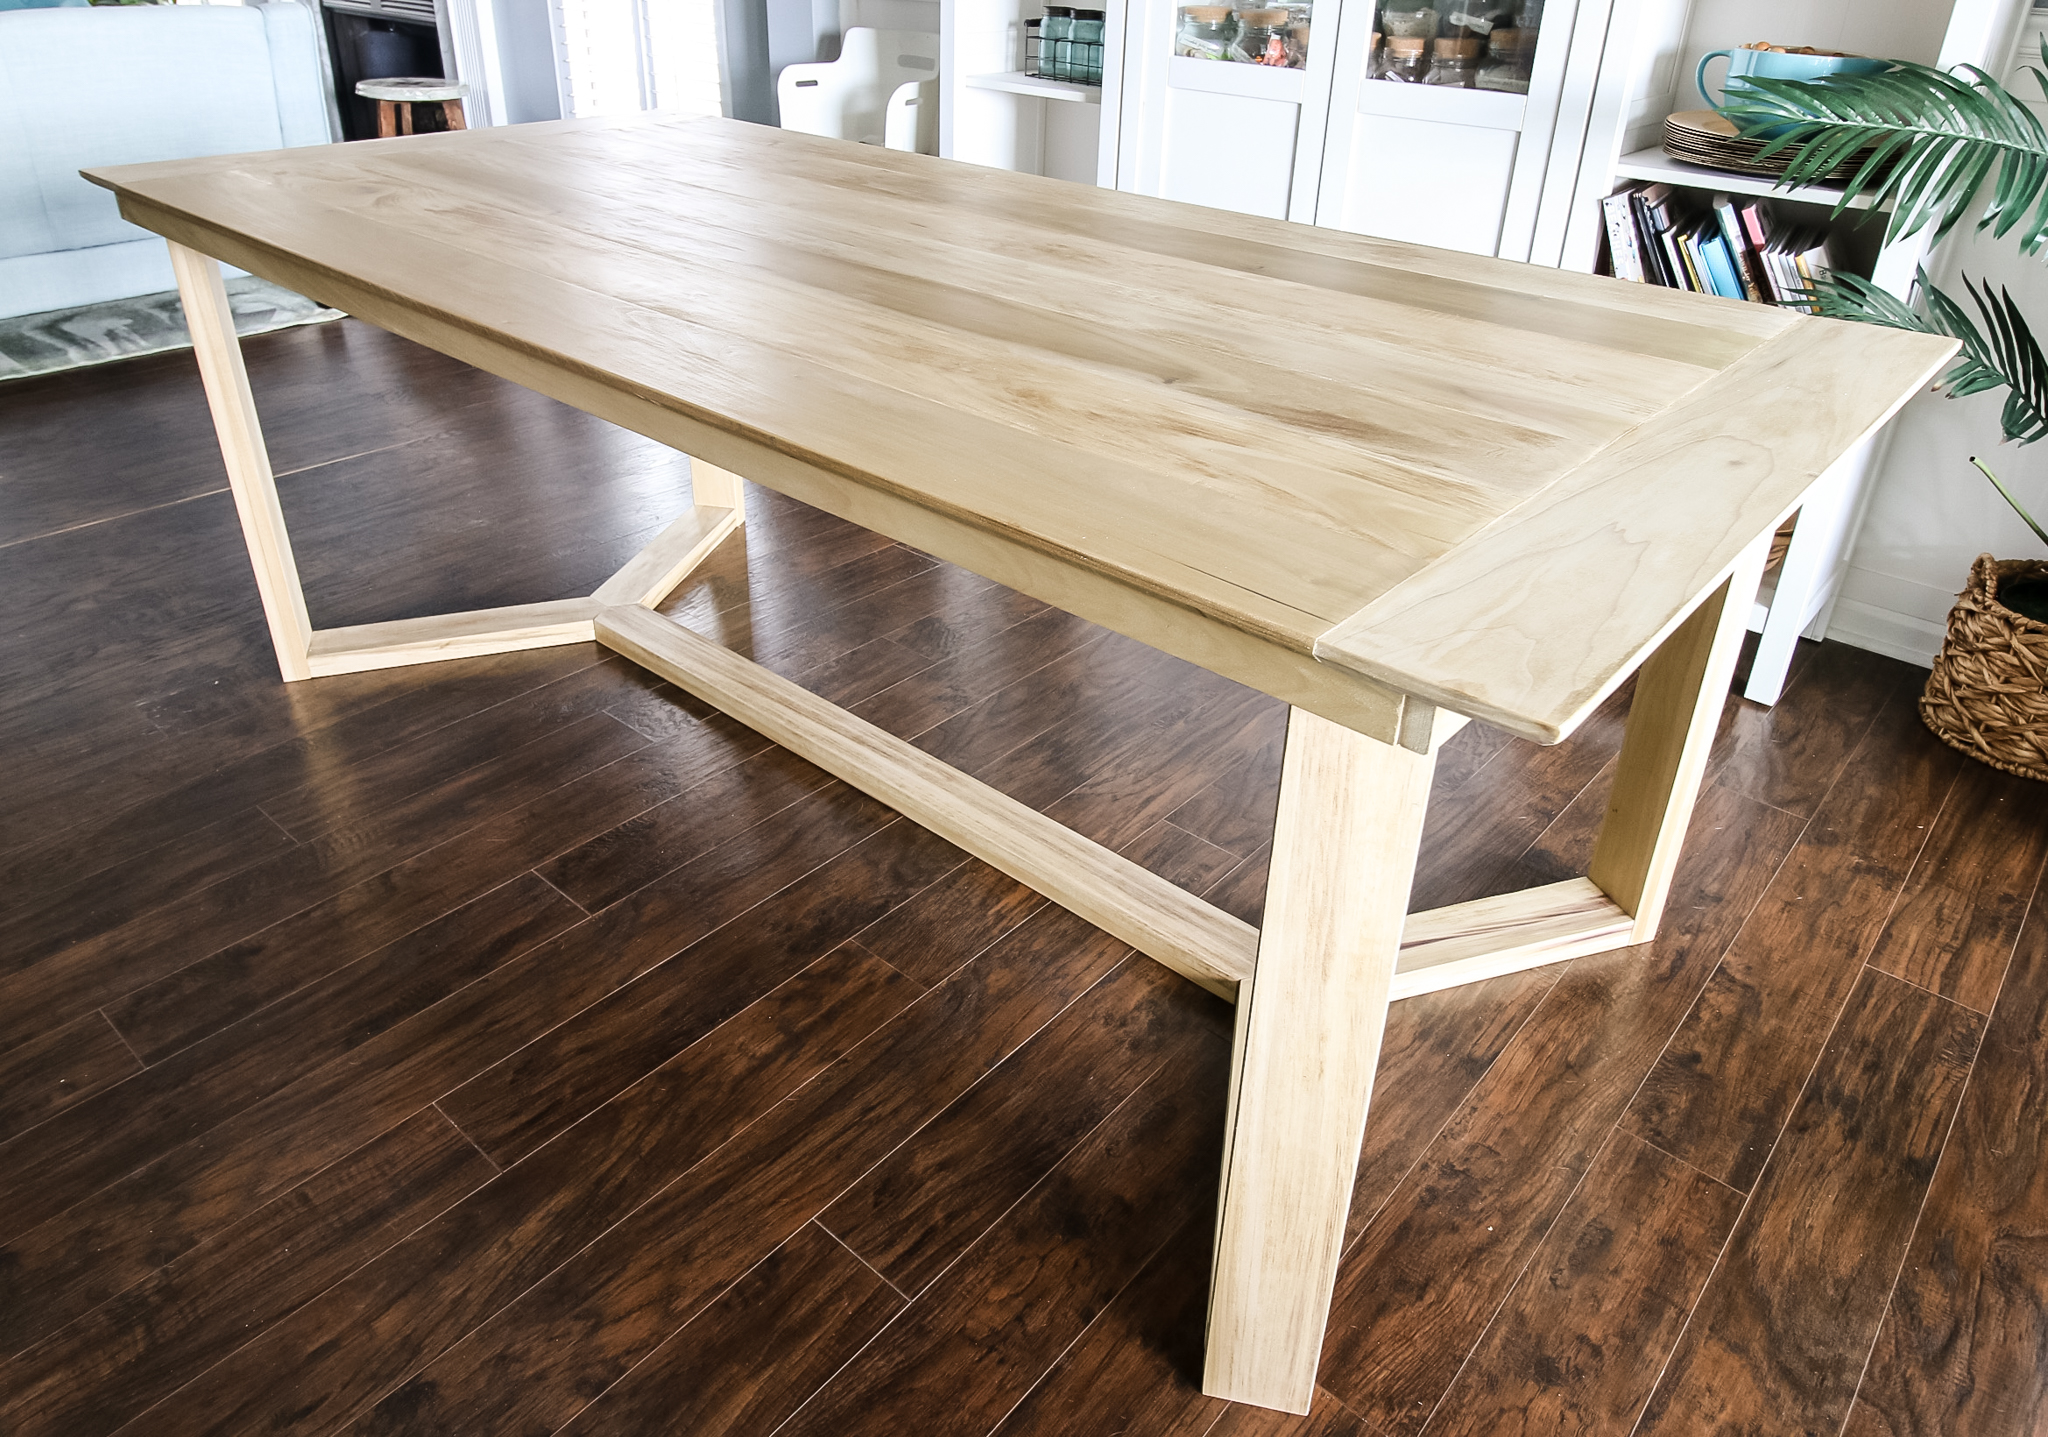 Full angled table